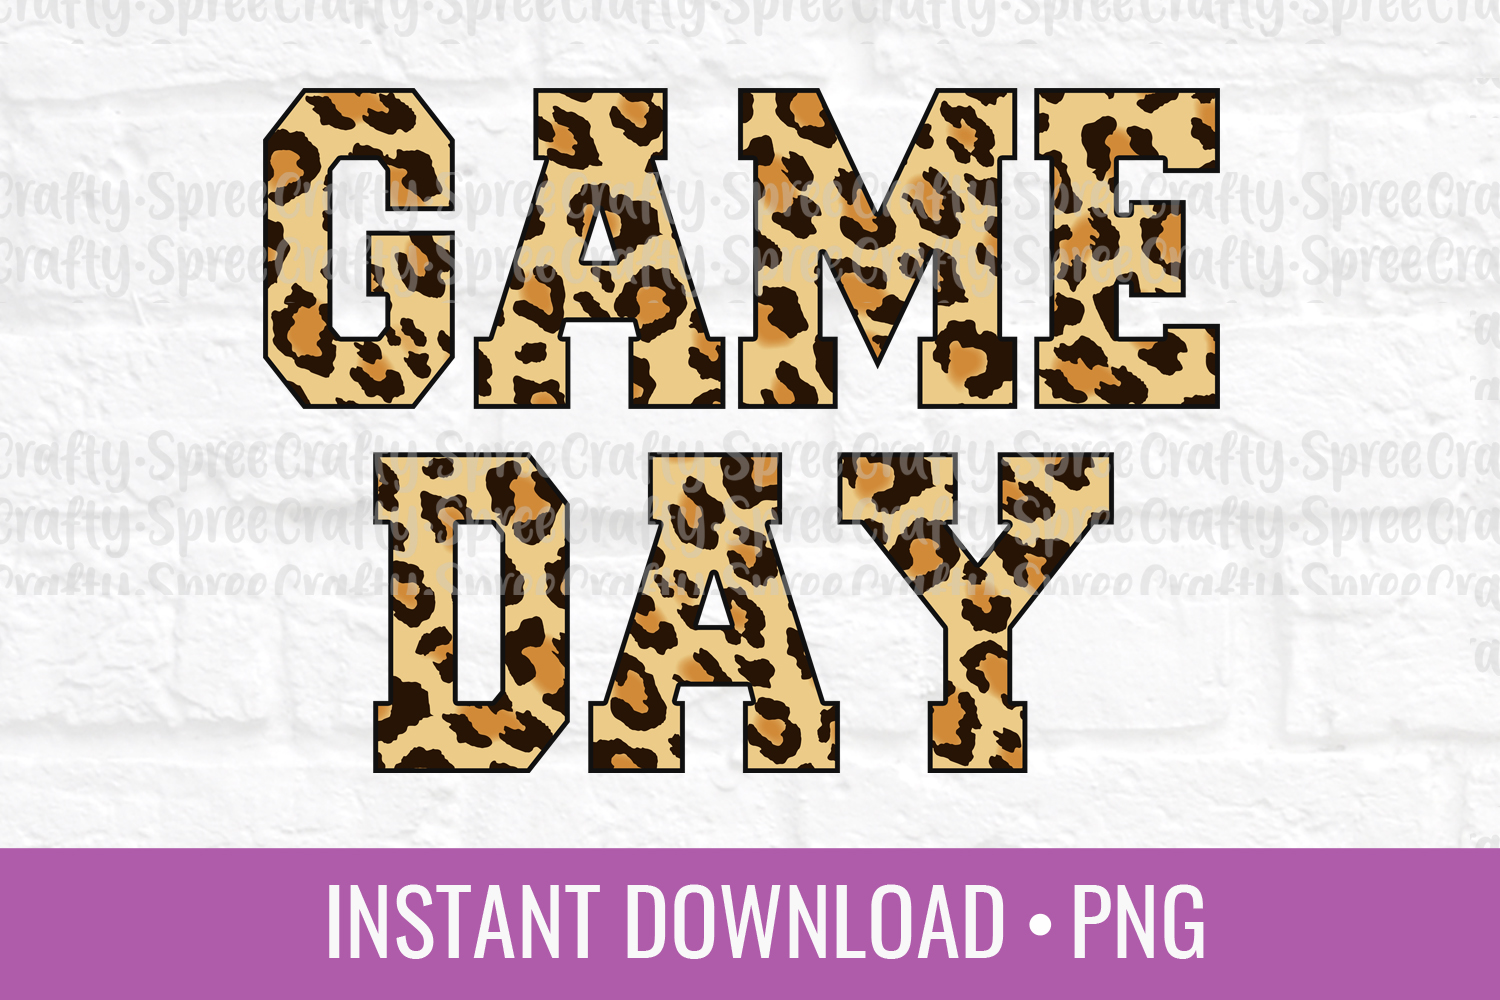 Game Day Leopard Print PNG Sublimation DTG Design example image 1